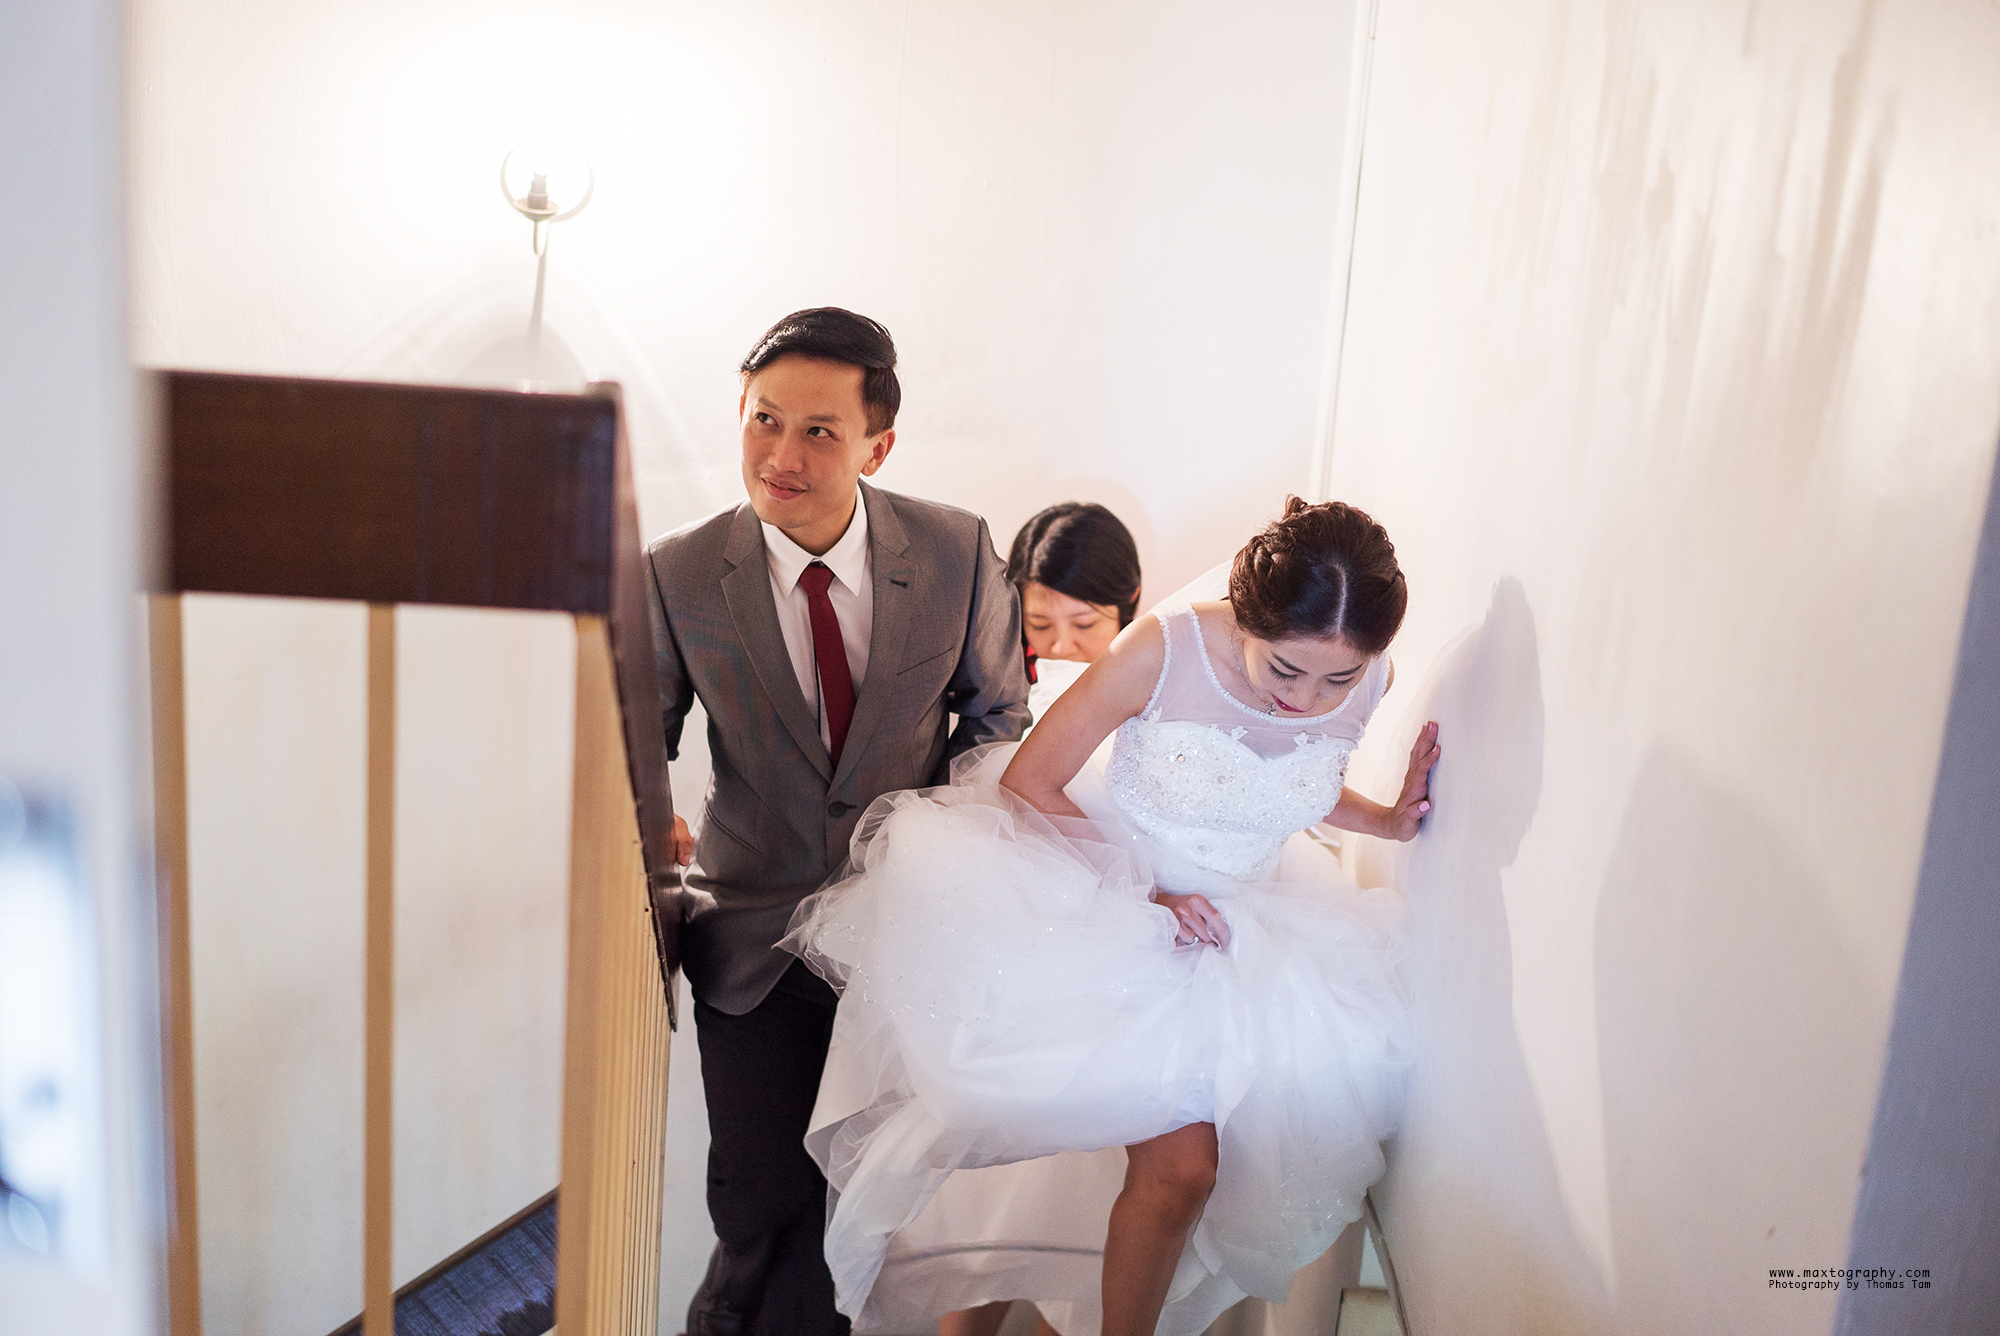 Groom & Bride on staircase